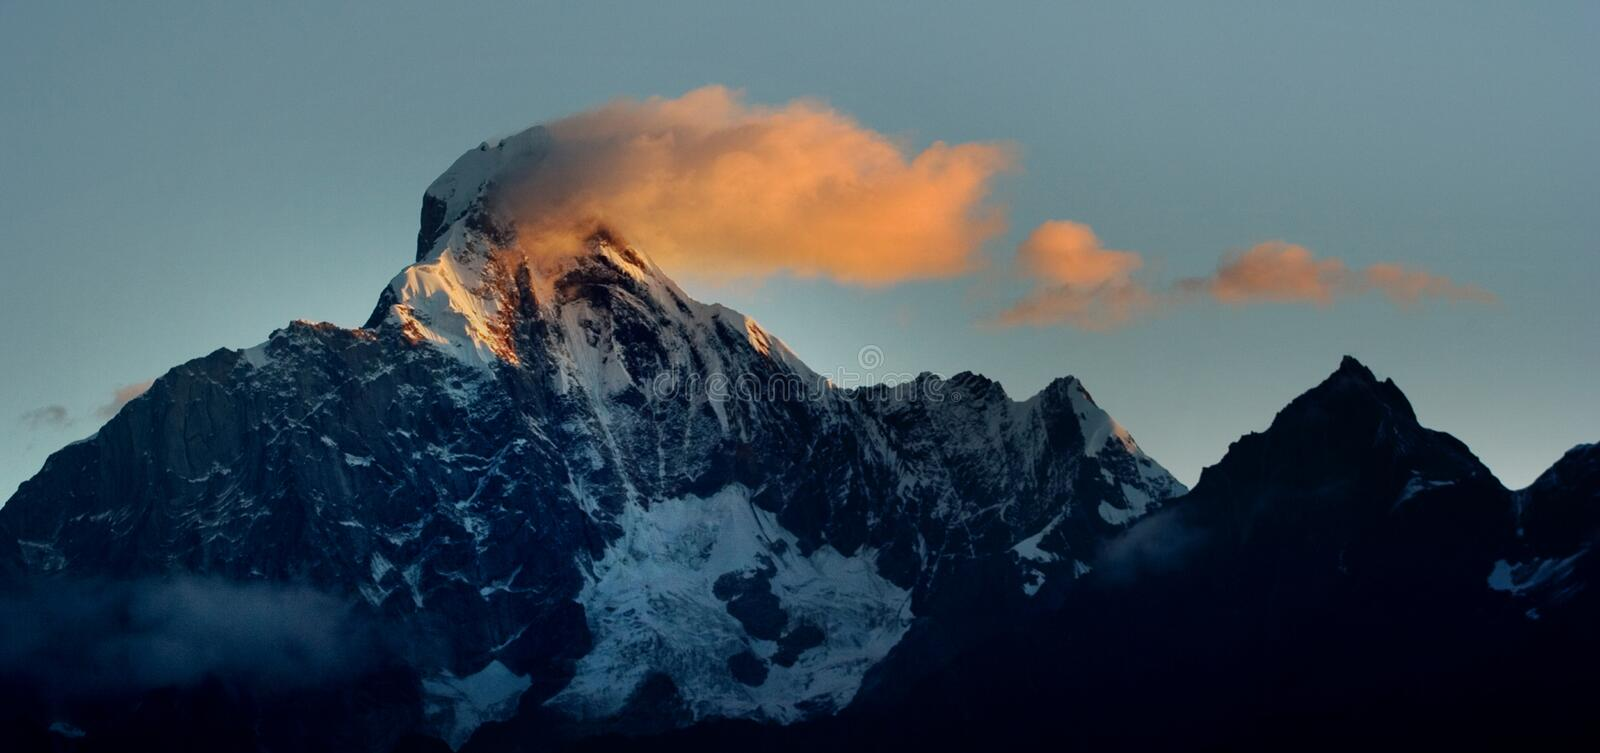 Download Day View Of Siguniang (Four Girls) Mountains Stock Image - Image: 8601391